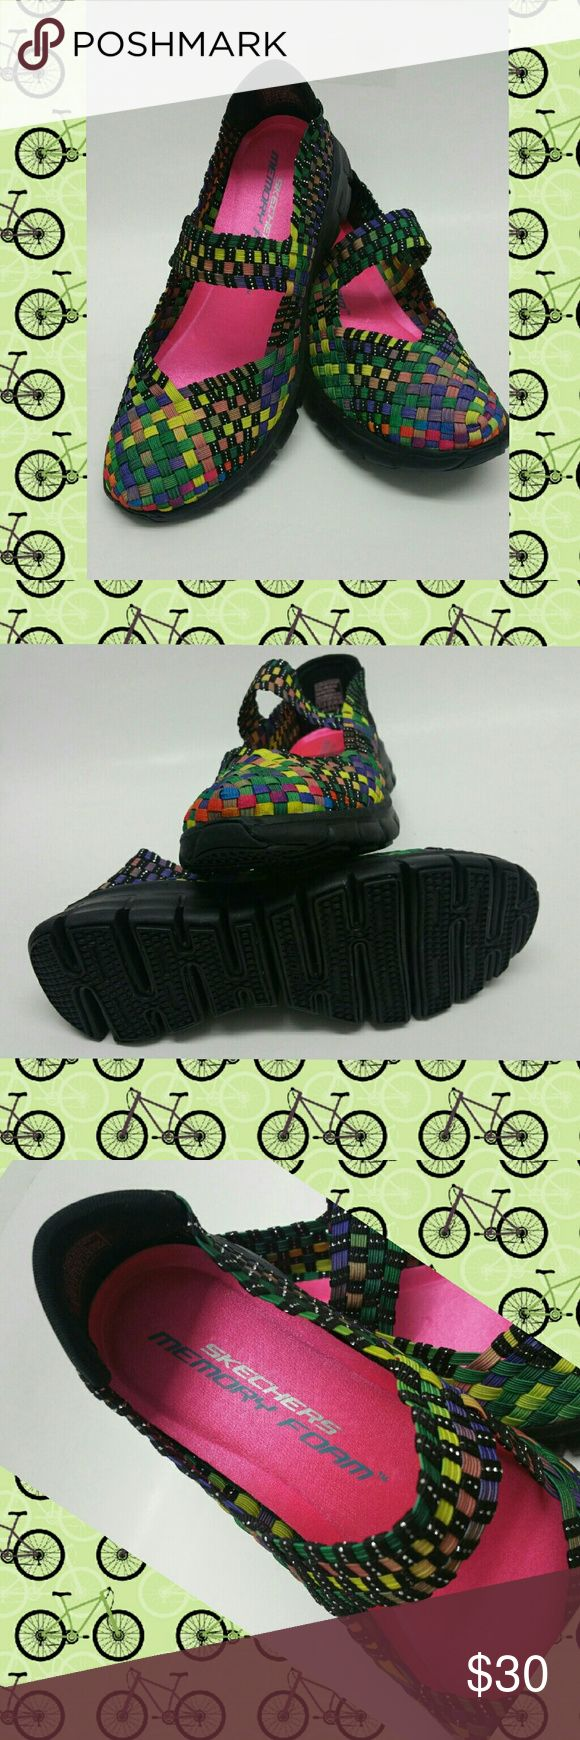 NWOB Sketchers Woven Mary Jane Sneakers, sz 7 As seen, without box or tags, Never Worn memory foam Sketchers sneakers. Skechers Shoes Sneakers